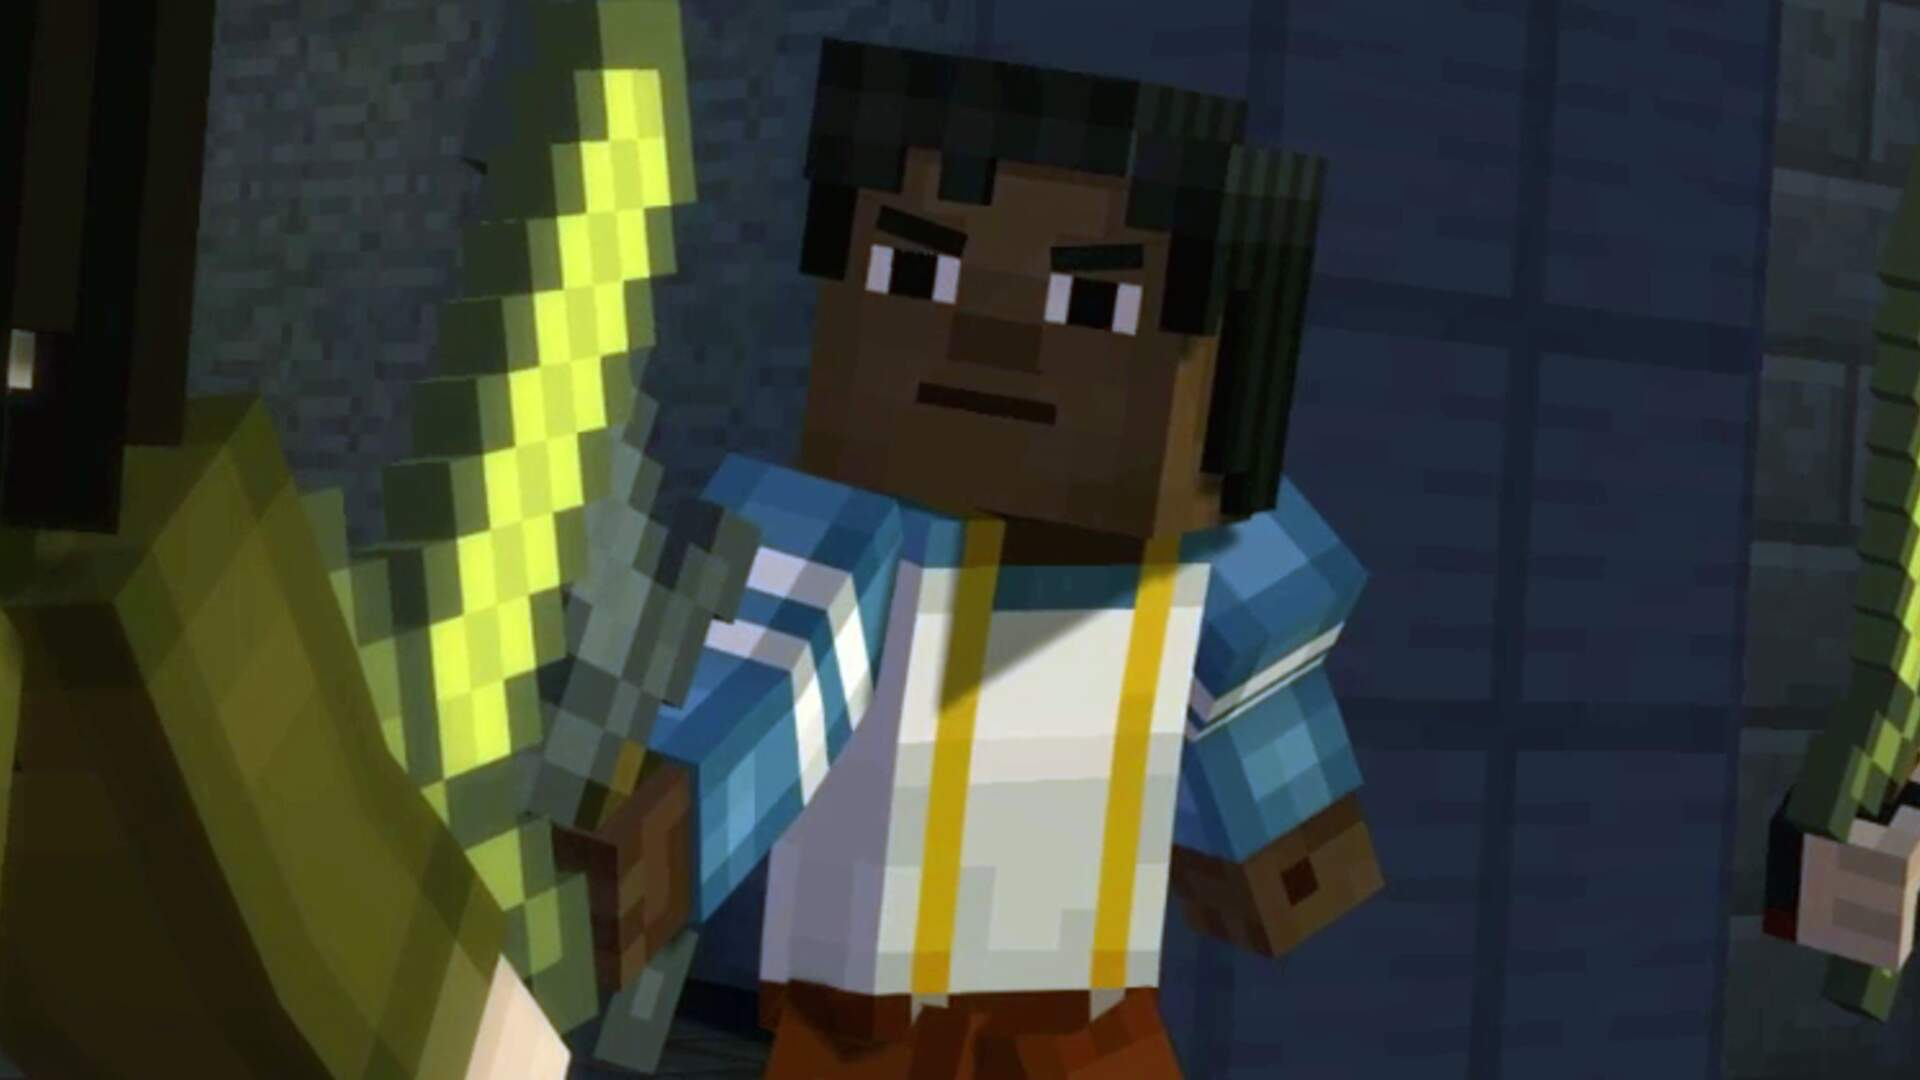 Minecraft Story Mode, Episode 2 PC Review: Press 'Q' to Progress